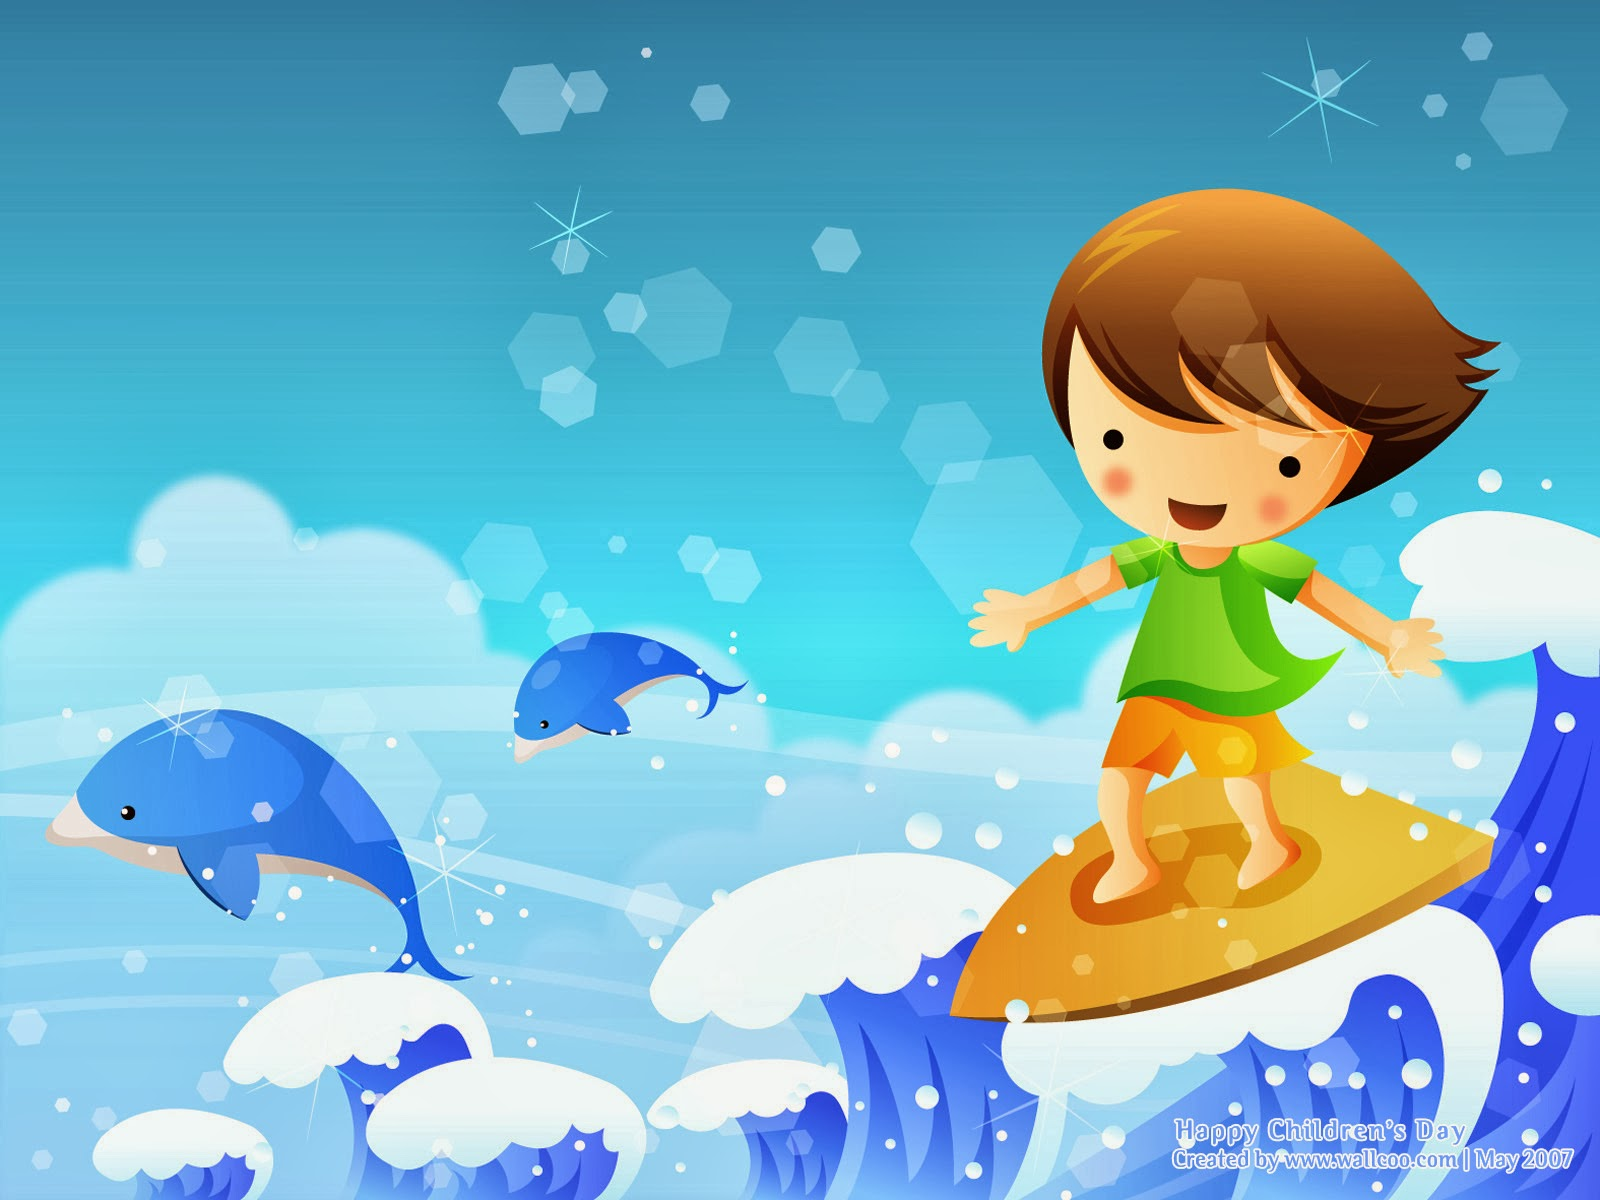 All in one wallpapers children 39 s day wallpapers for Kids wallpaper